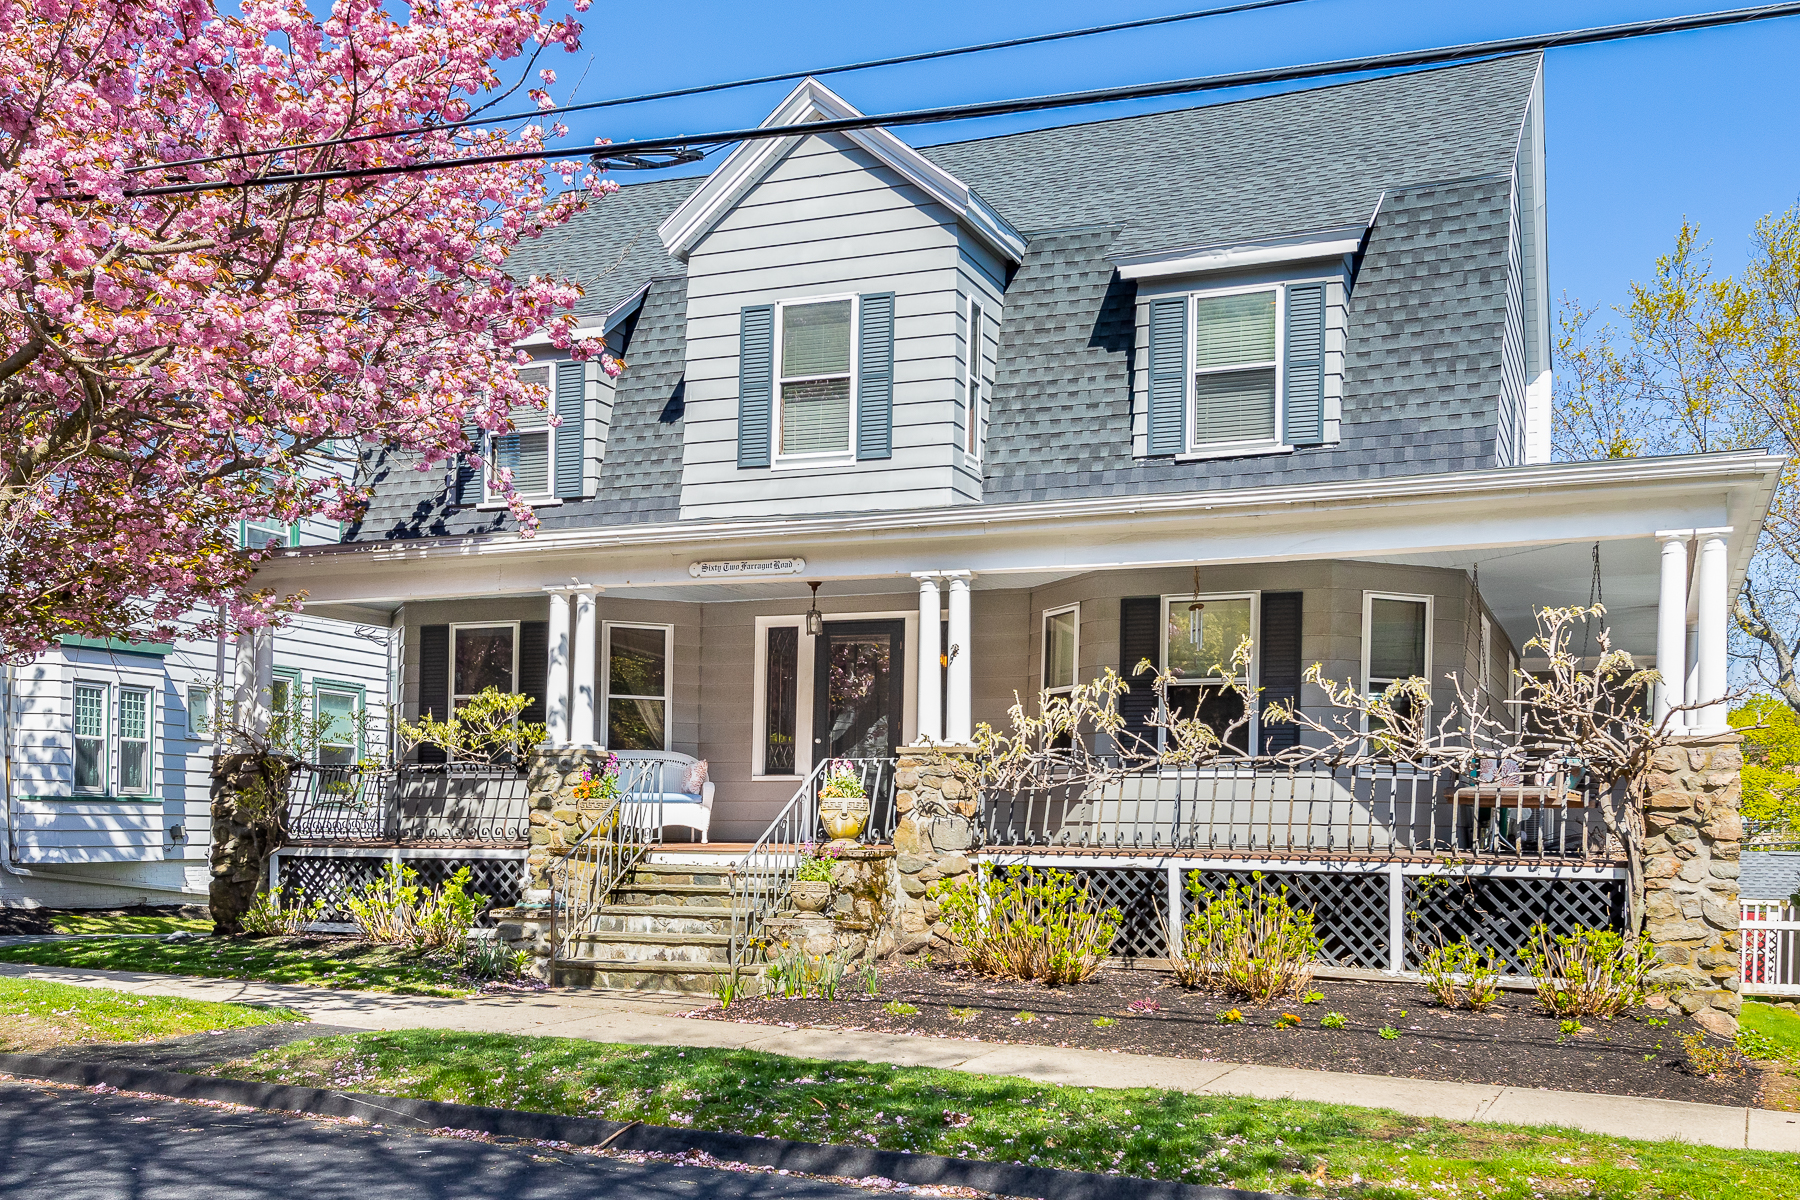 Single Family Homes for Active at Lovely Dutch Gambrel Colonial 62 Farragut Road Swampscott, Massachusetts 01907 United States